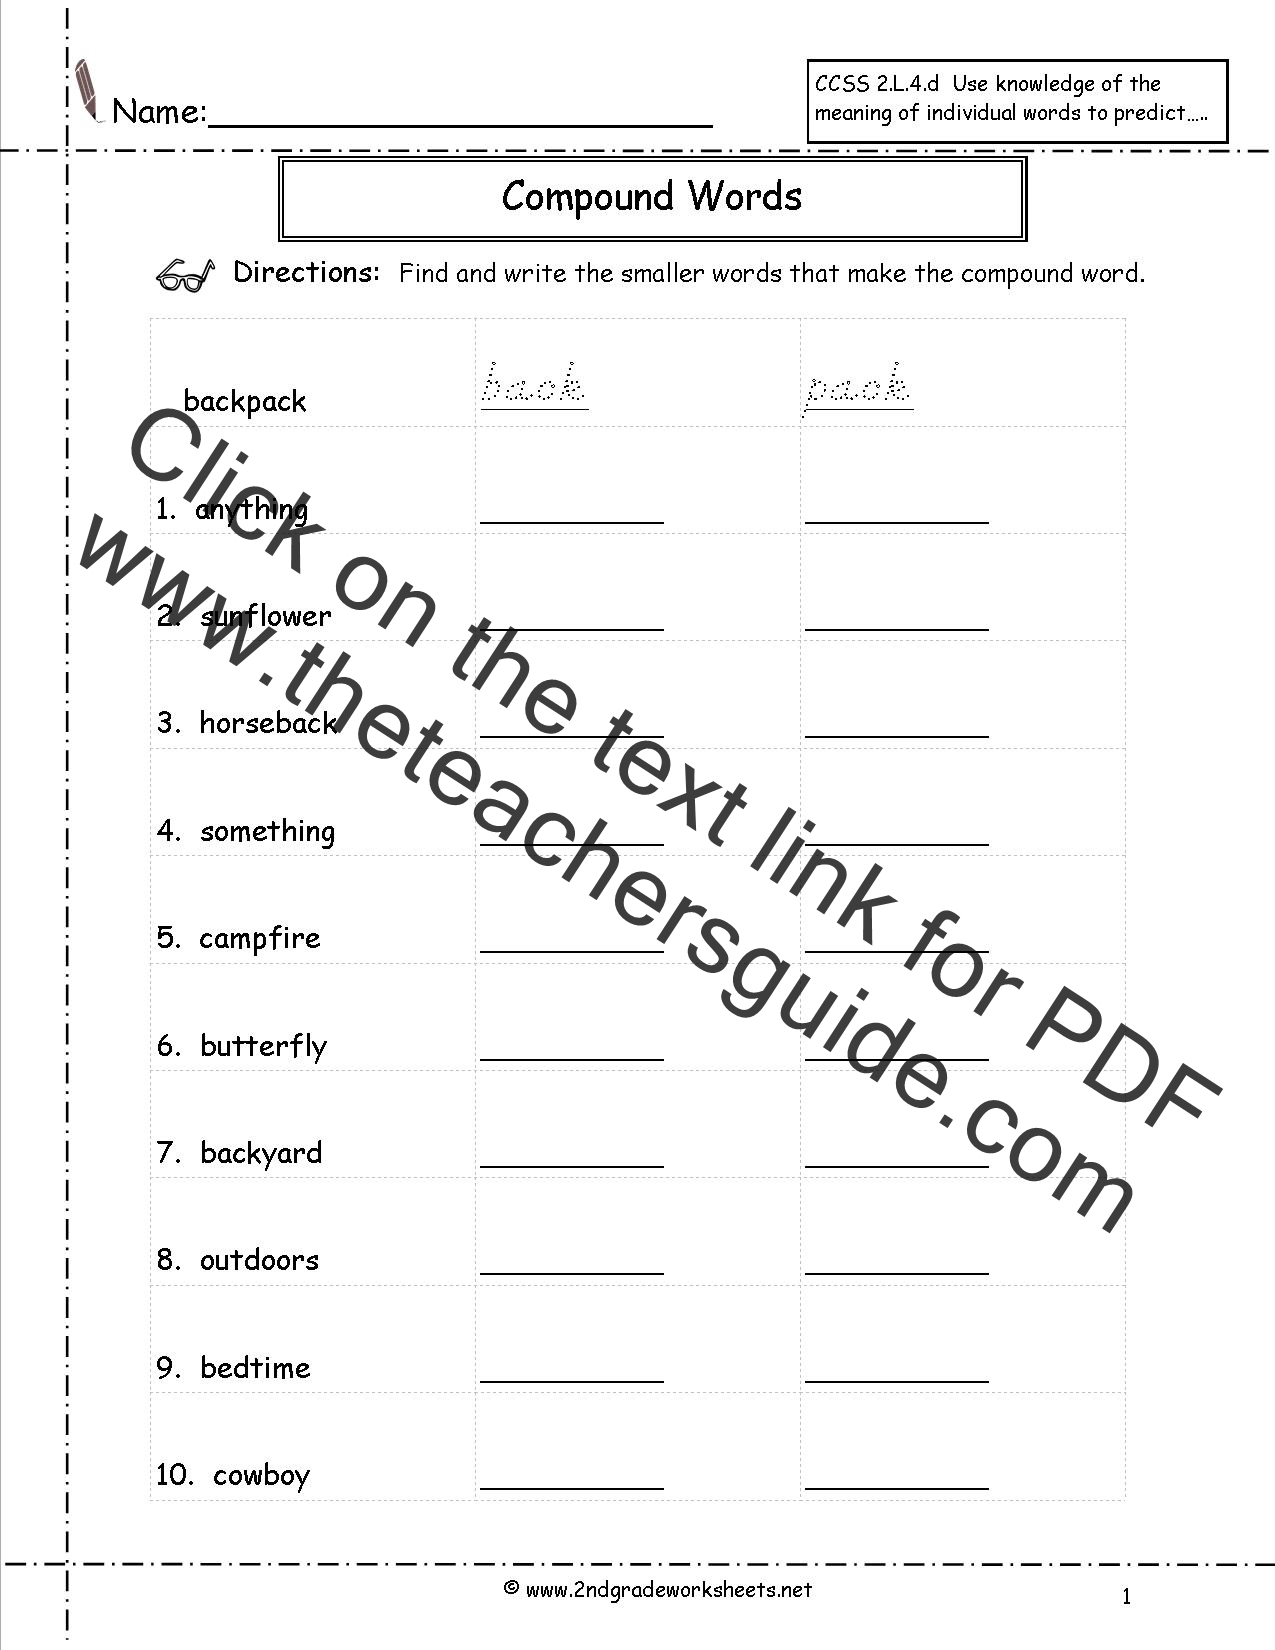 Free Language/Grammar Worksheets and Printouts